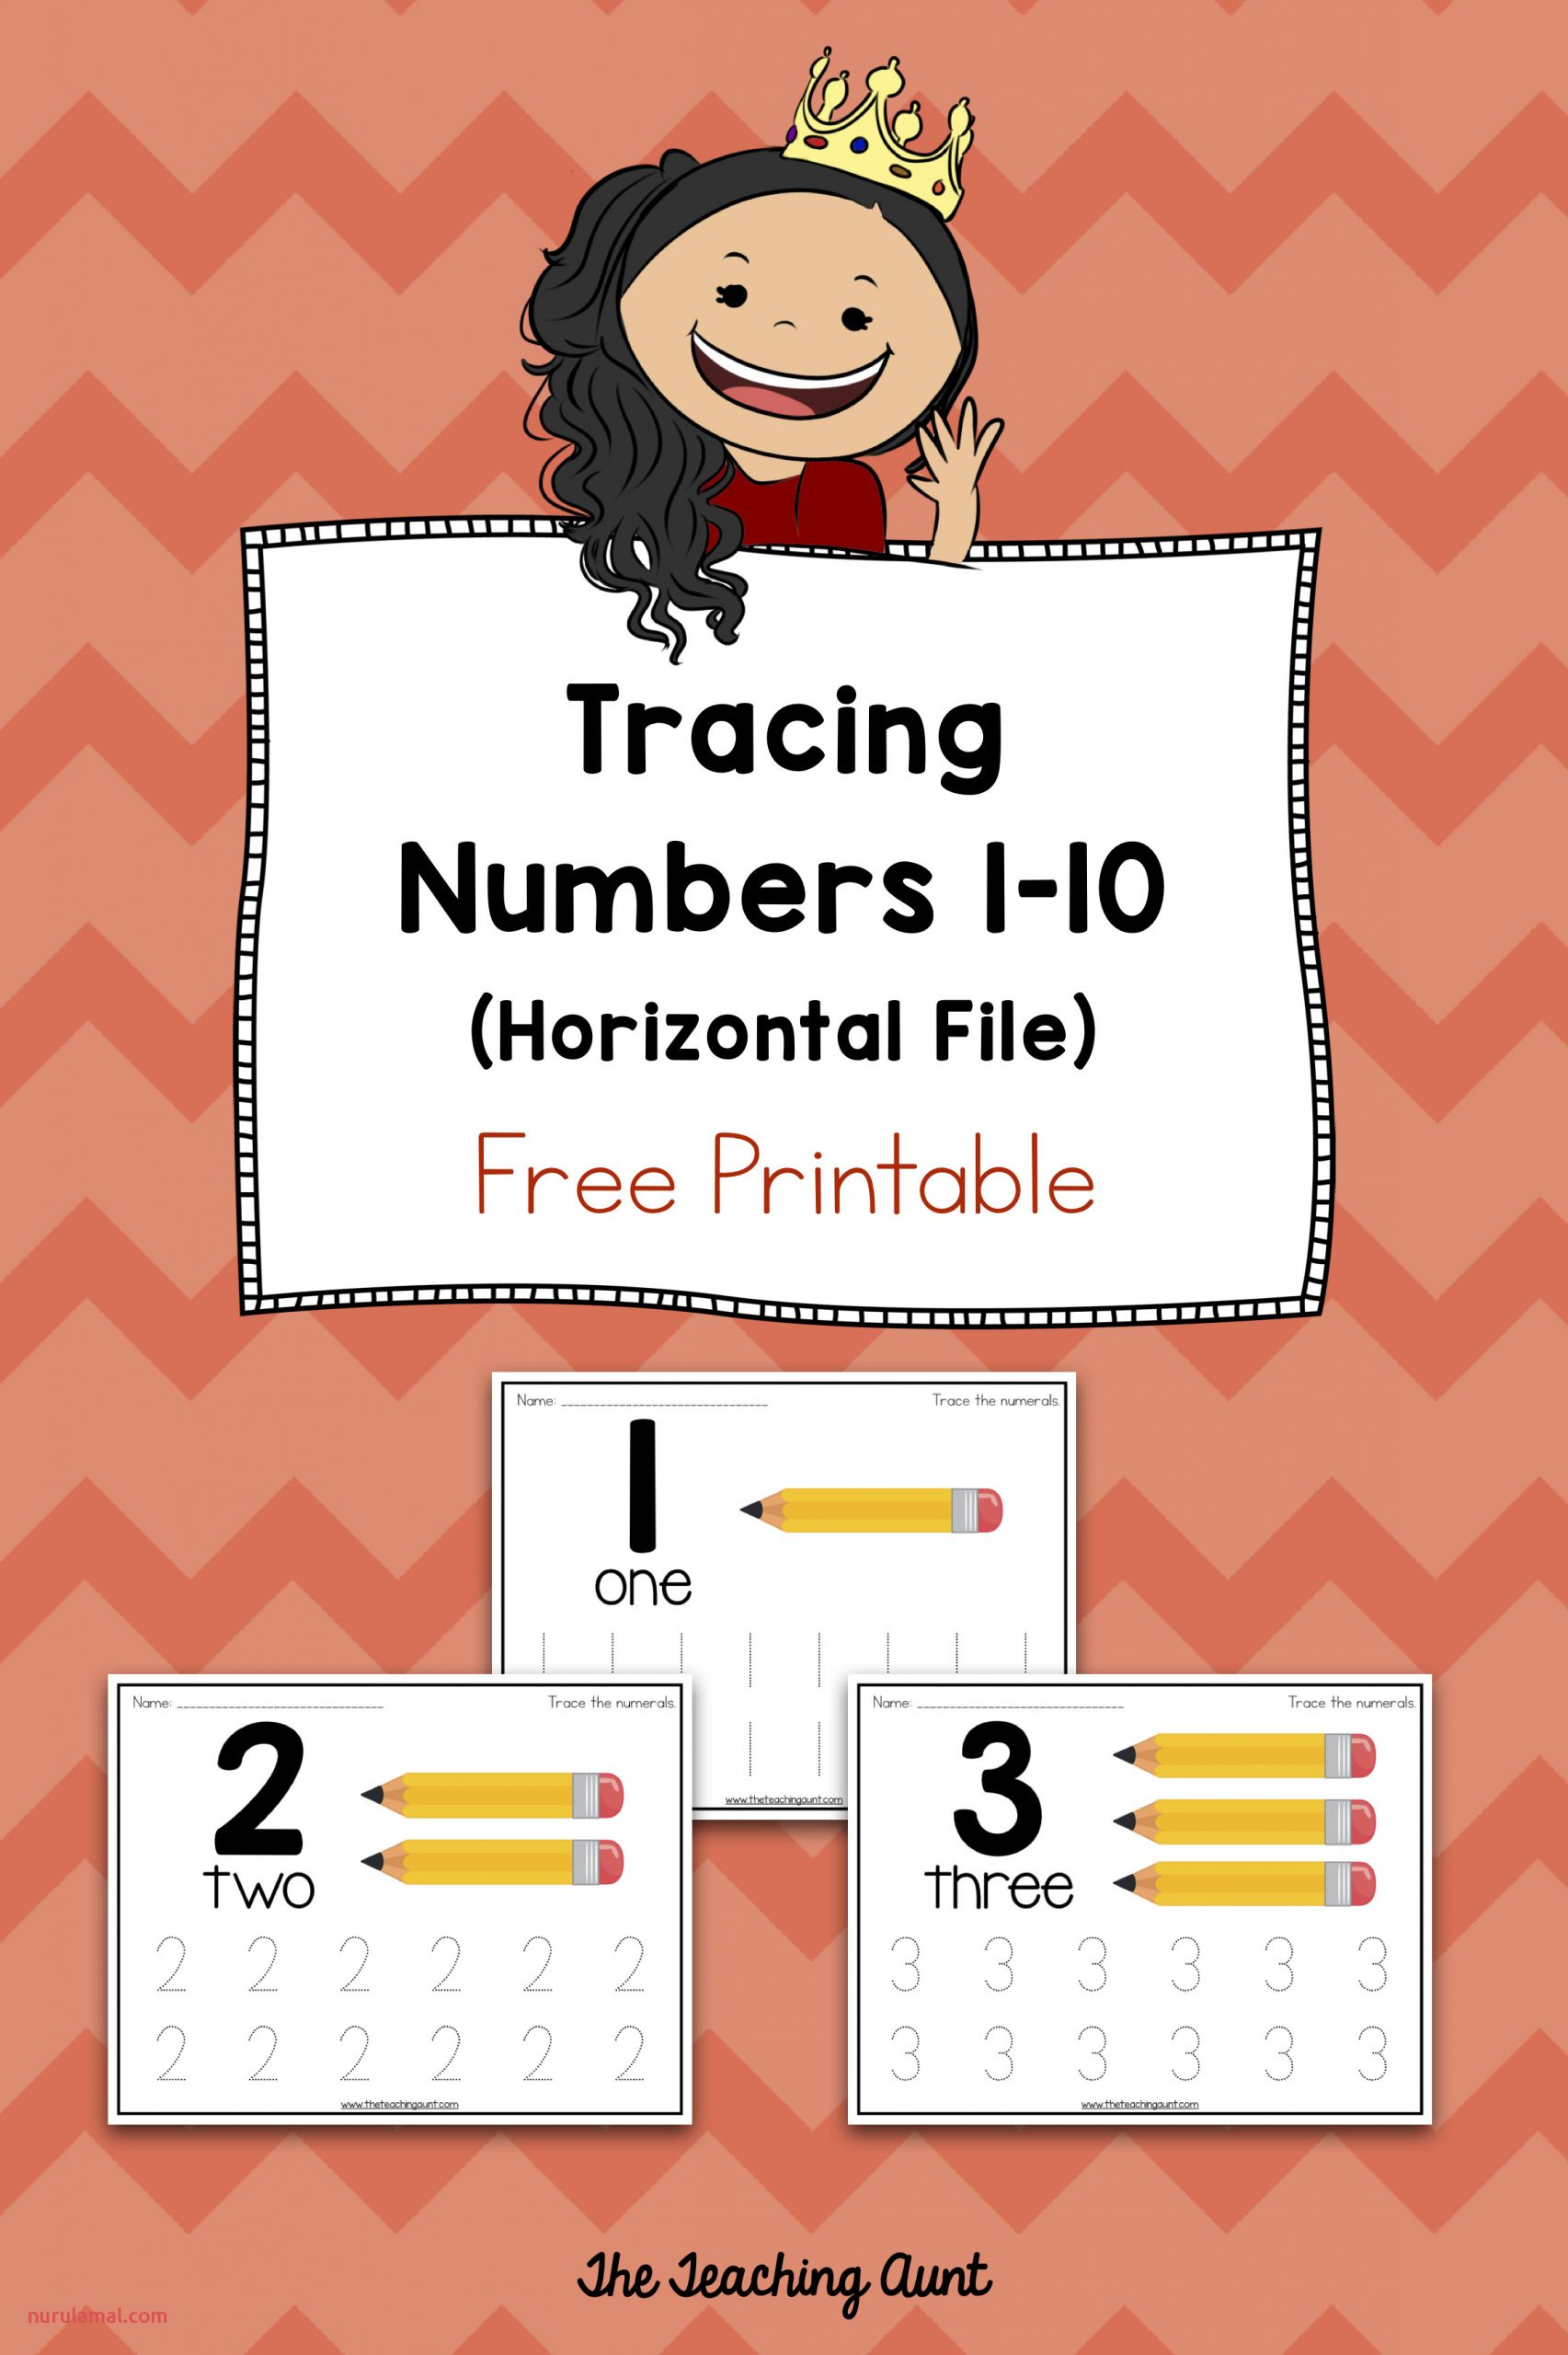 Number Tracing Worksheets for Children the Teaching Aunt